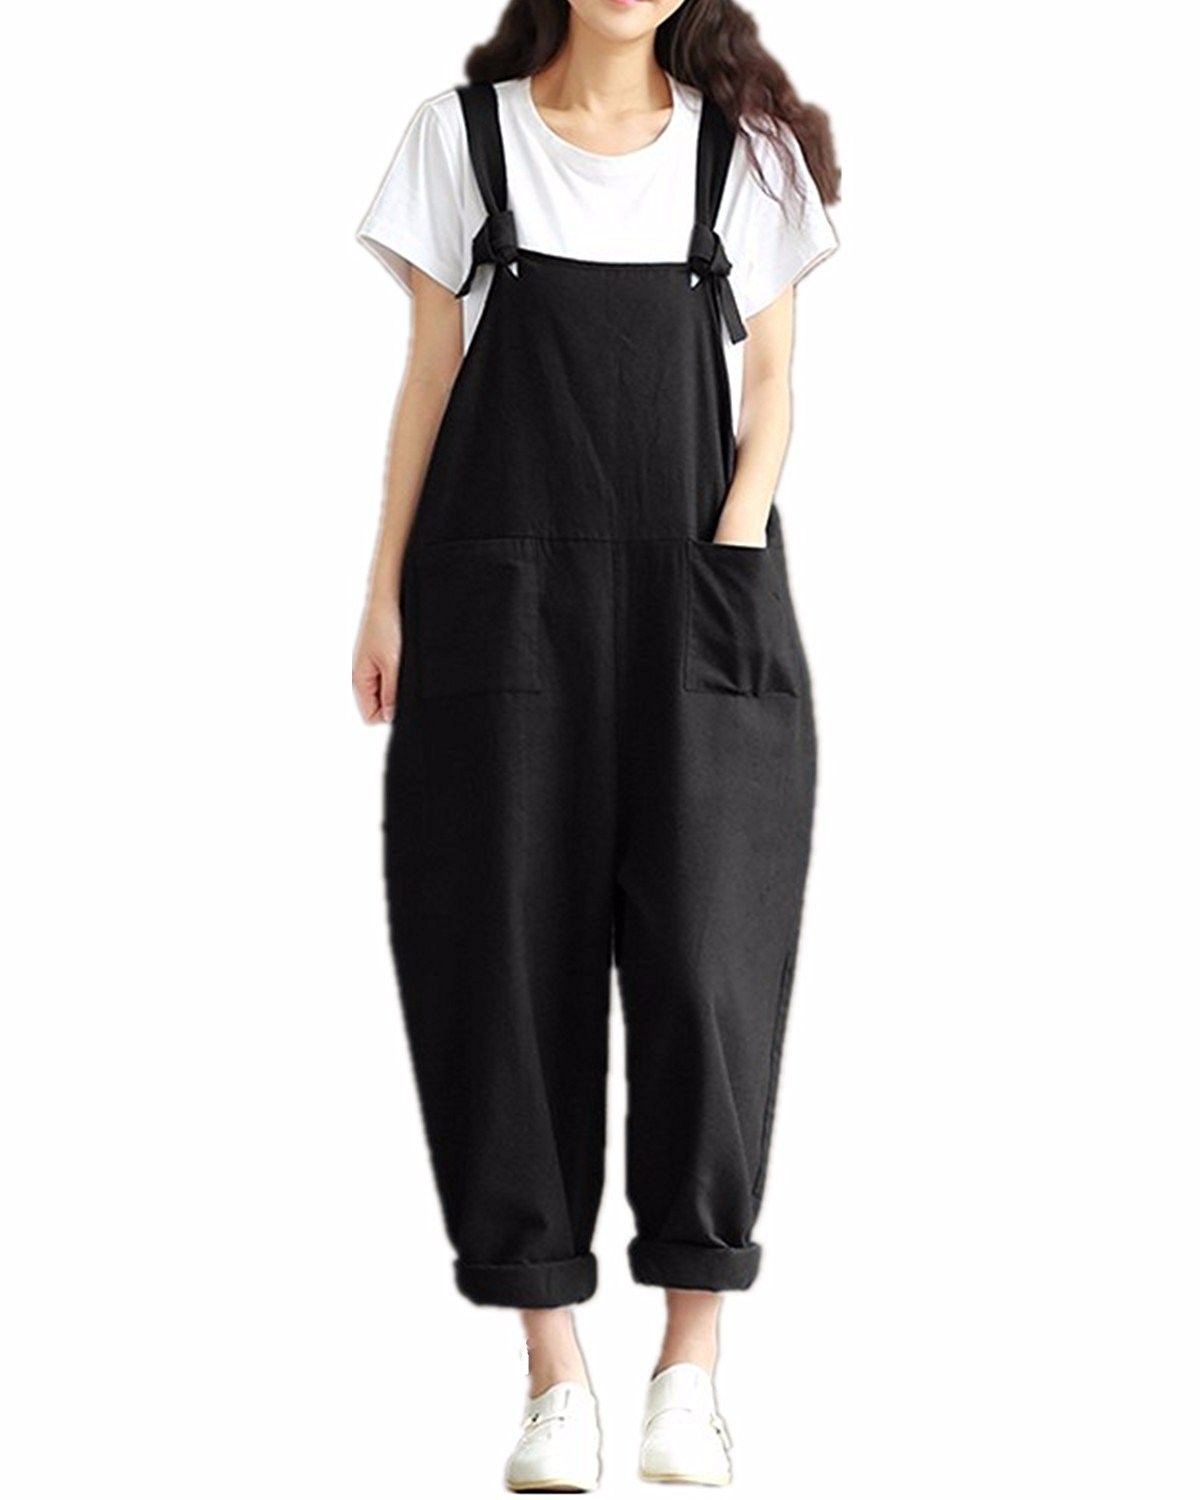 Women s Strap Overall Pockets Long Playsuit Casual Baggy Sleeveless ... 33ae737ec216